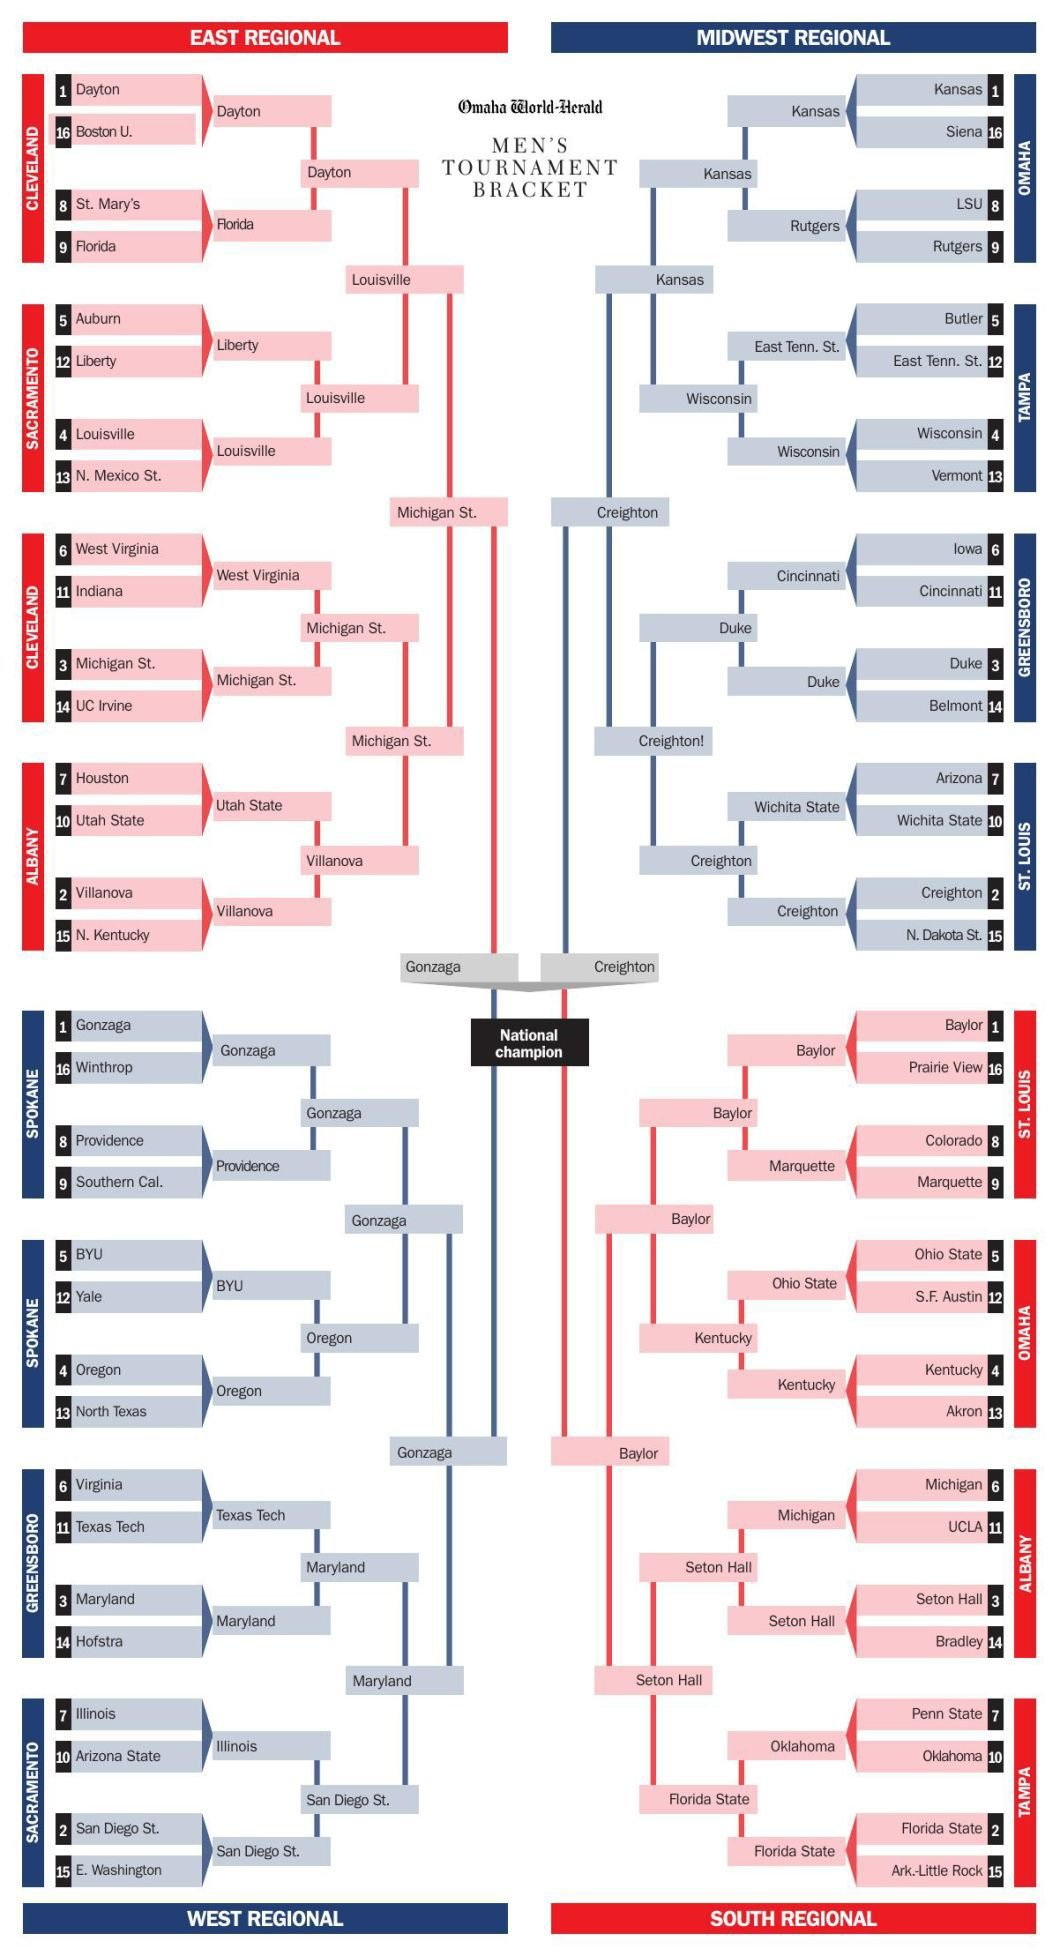 2020 World-Herald NCAA Tournament